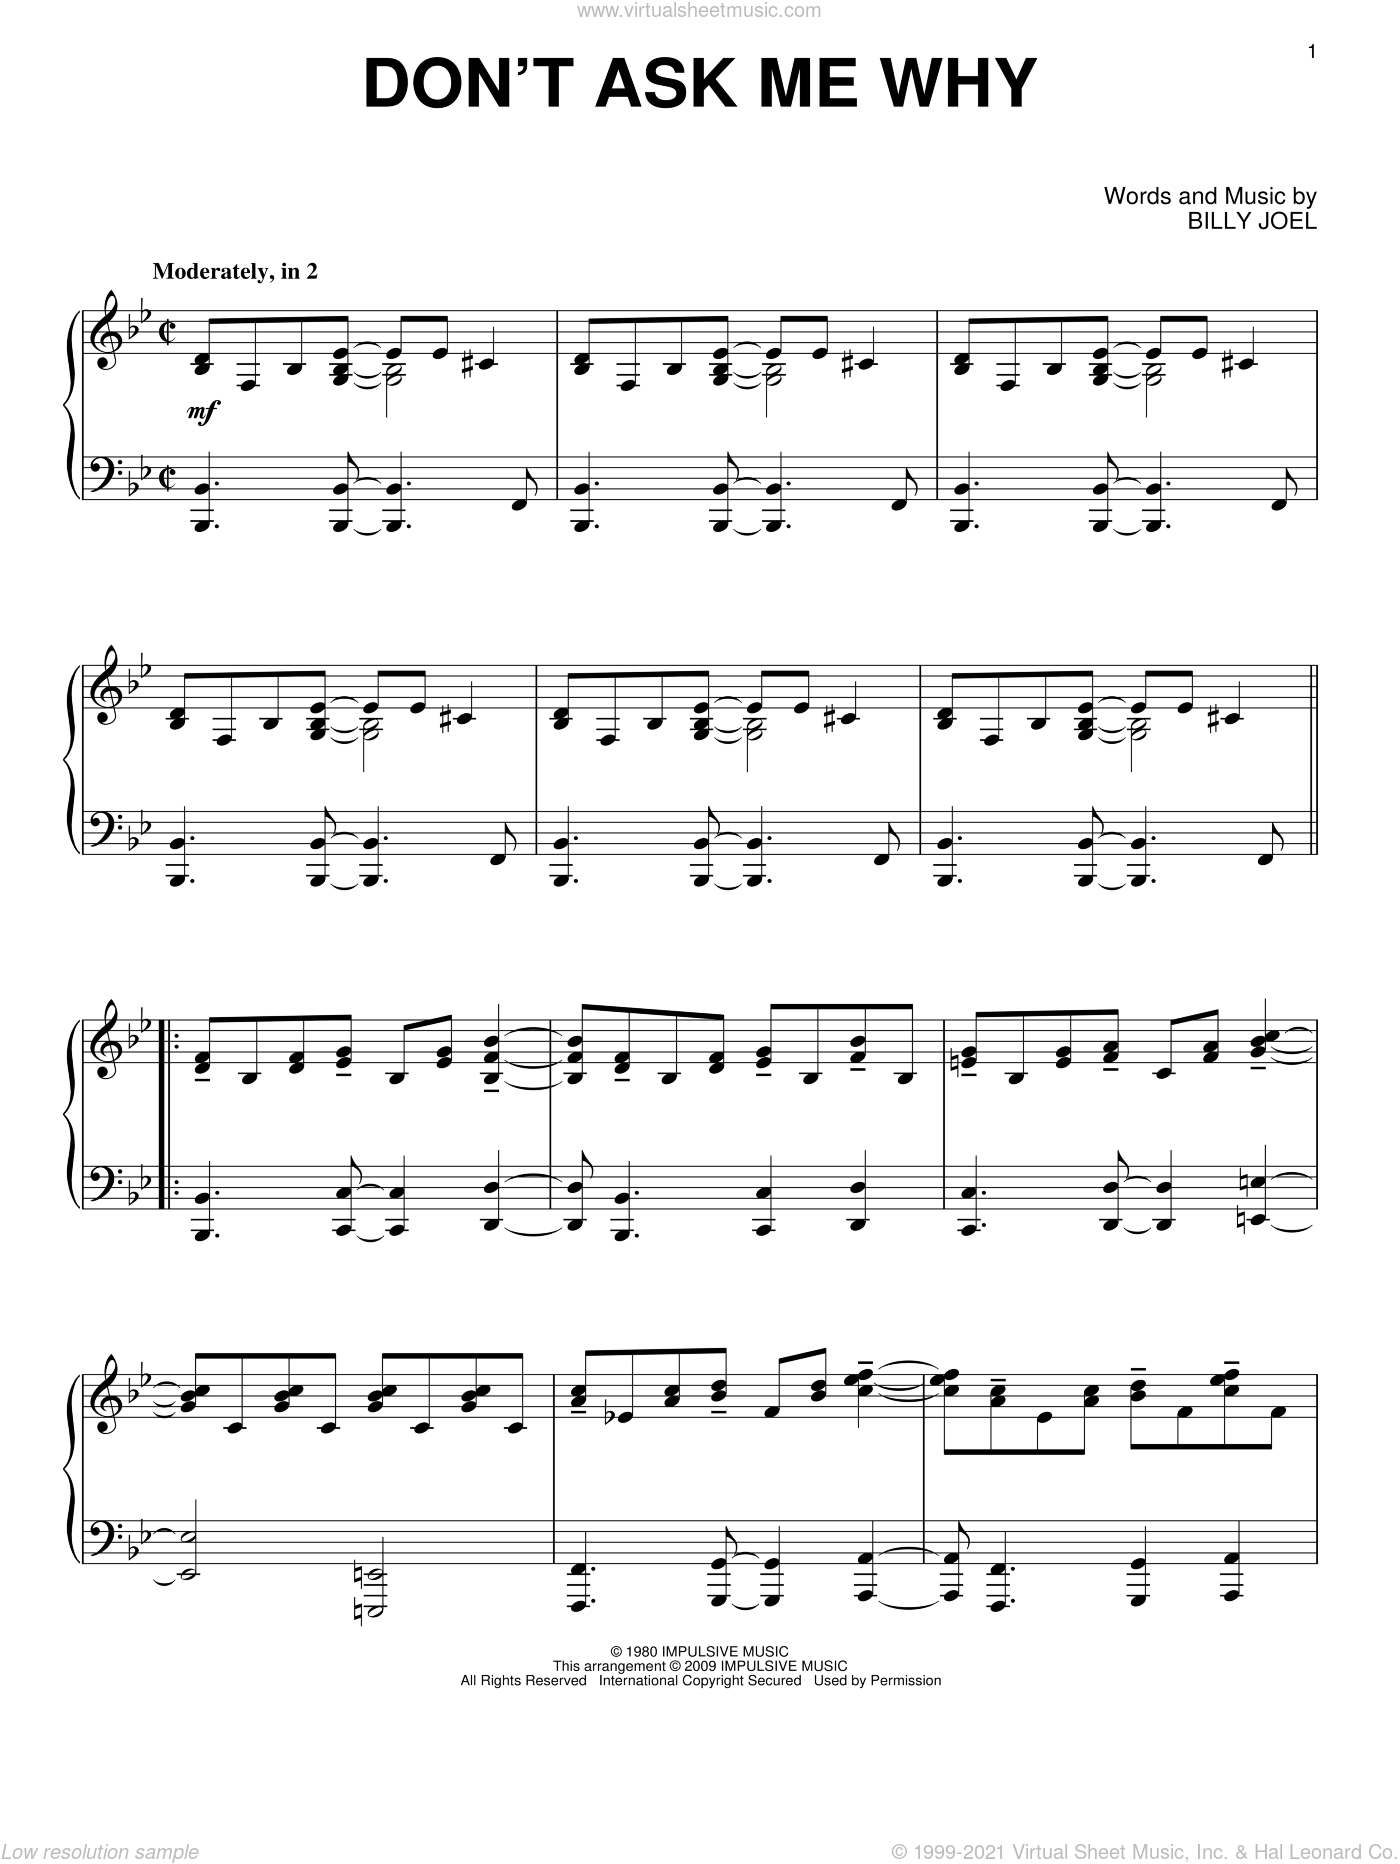 Don't Ask Me Why sheet music for piano solo by Billy Joel, intermediate skill level